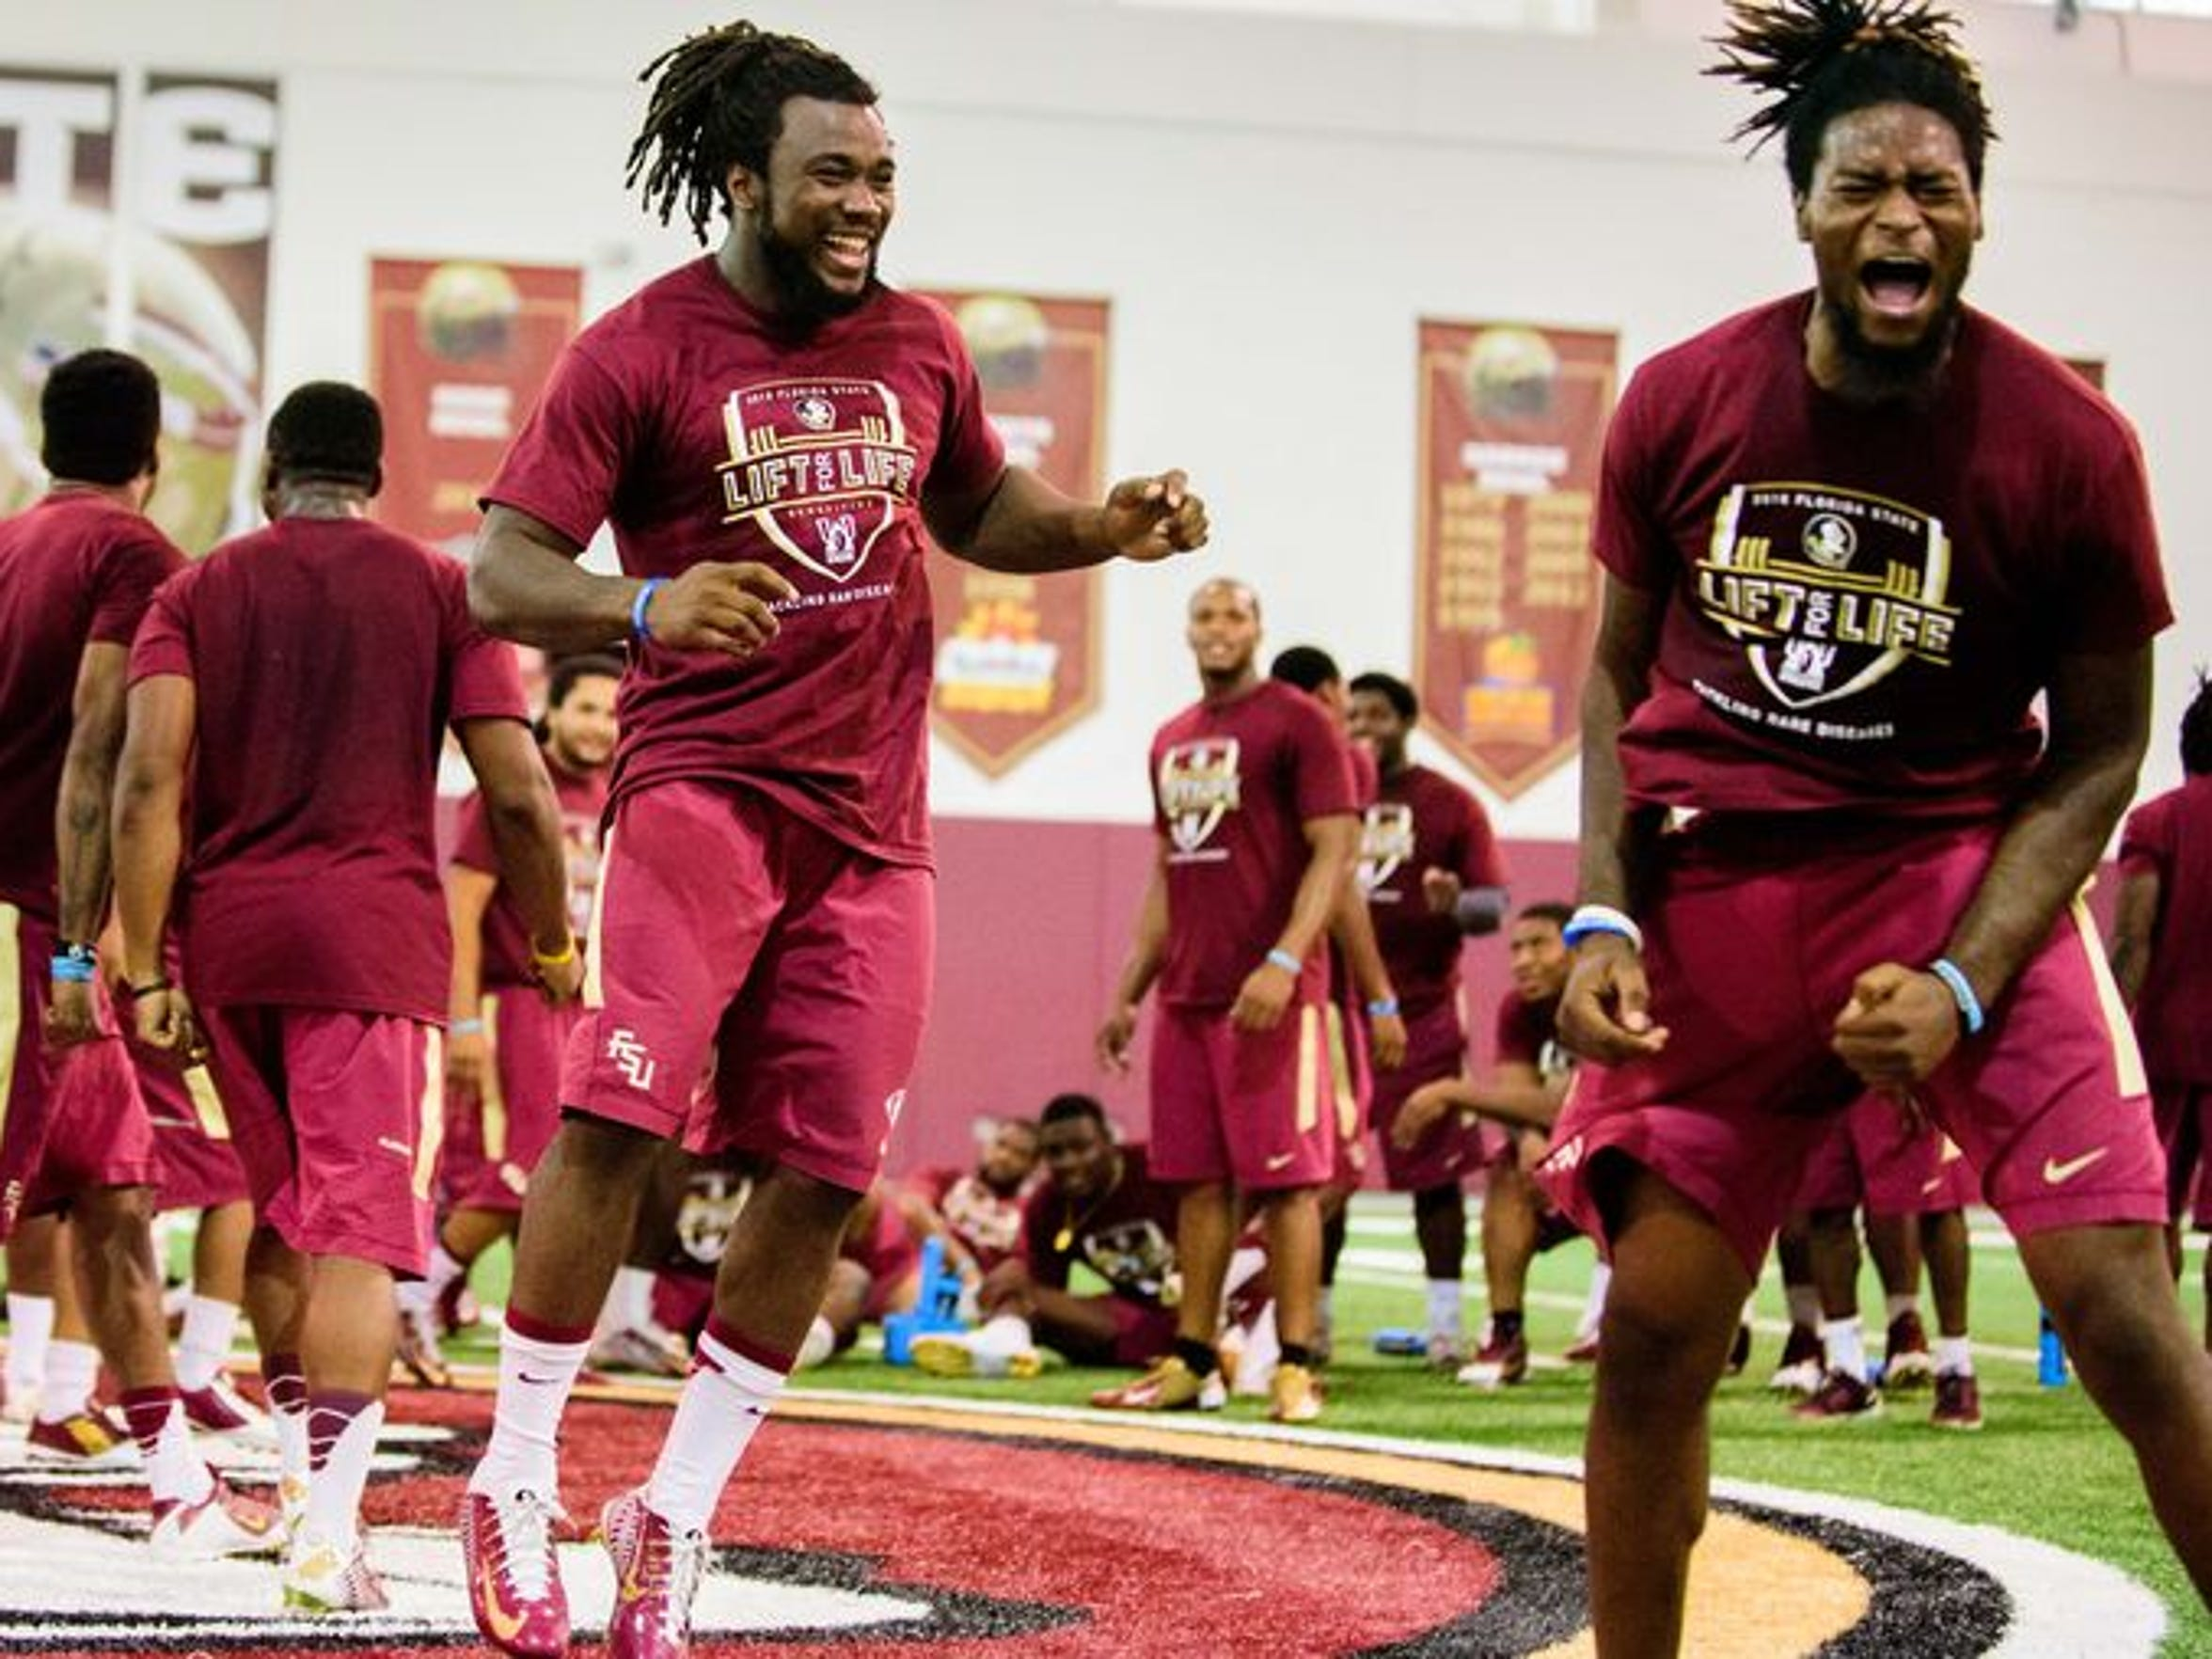 Dalvin Cook's emergence as a complete leader fuels optimism among FSU's coaching staff.